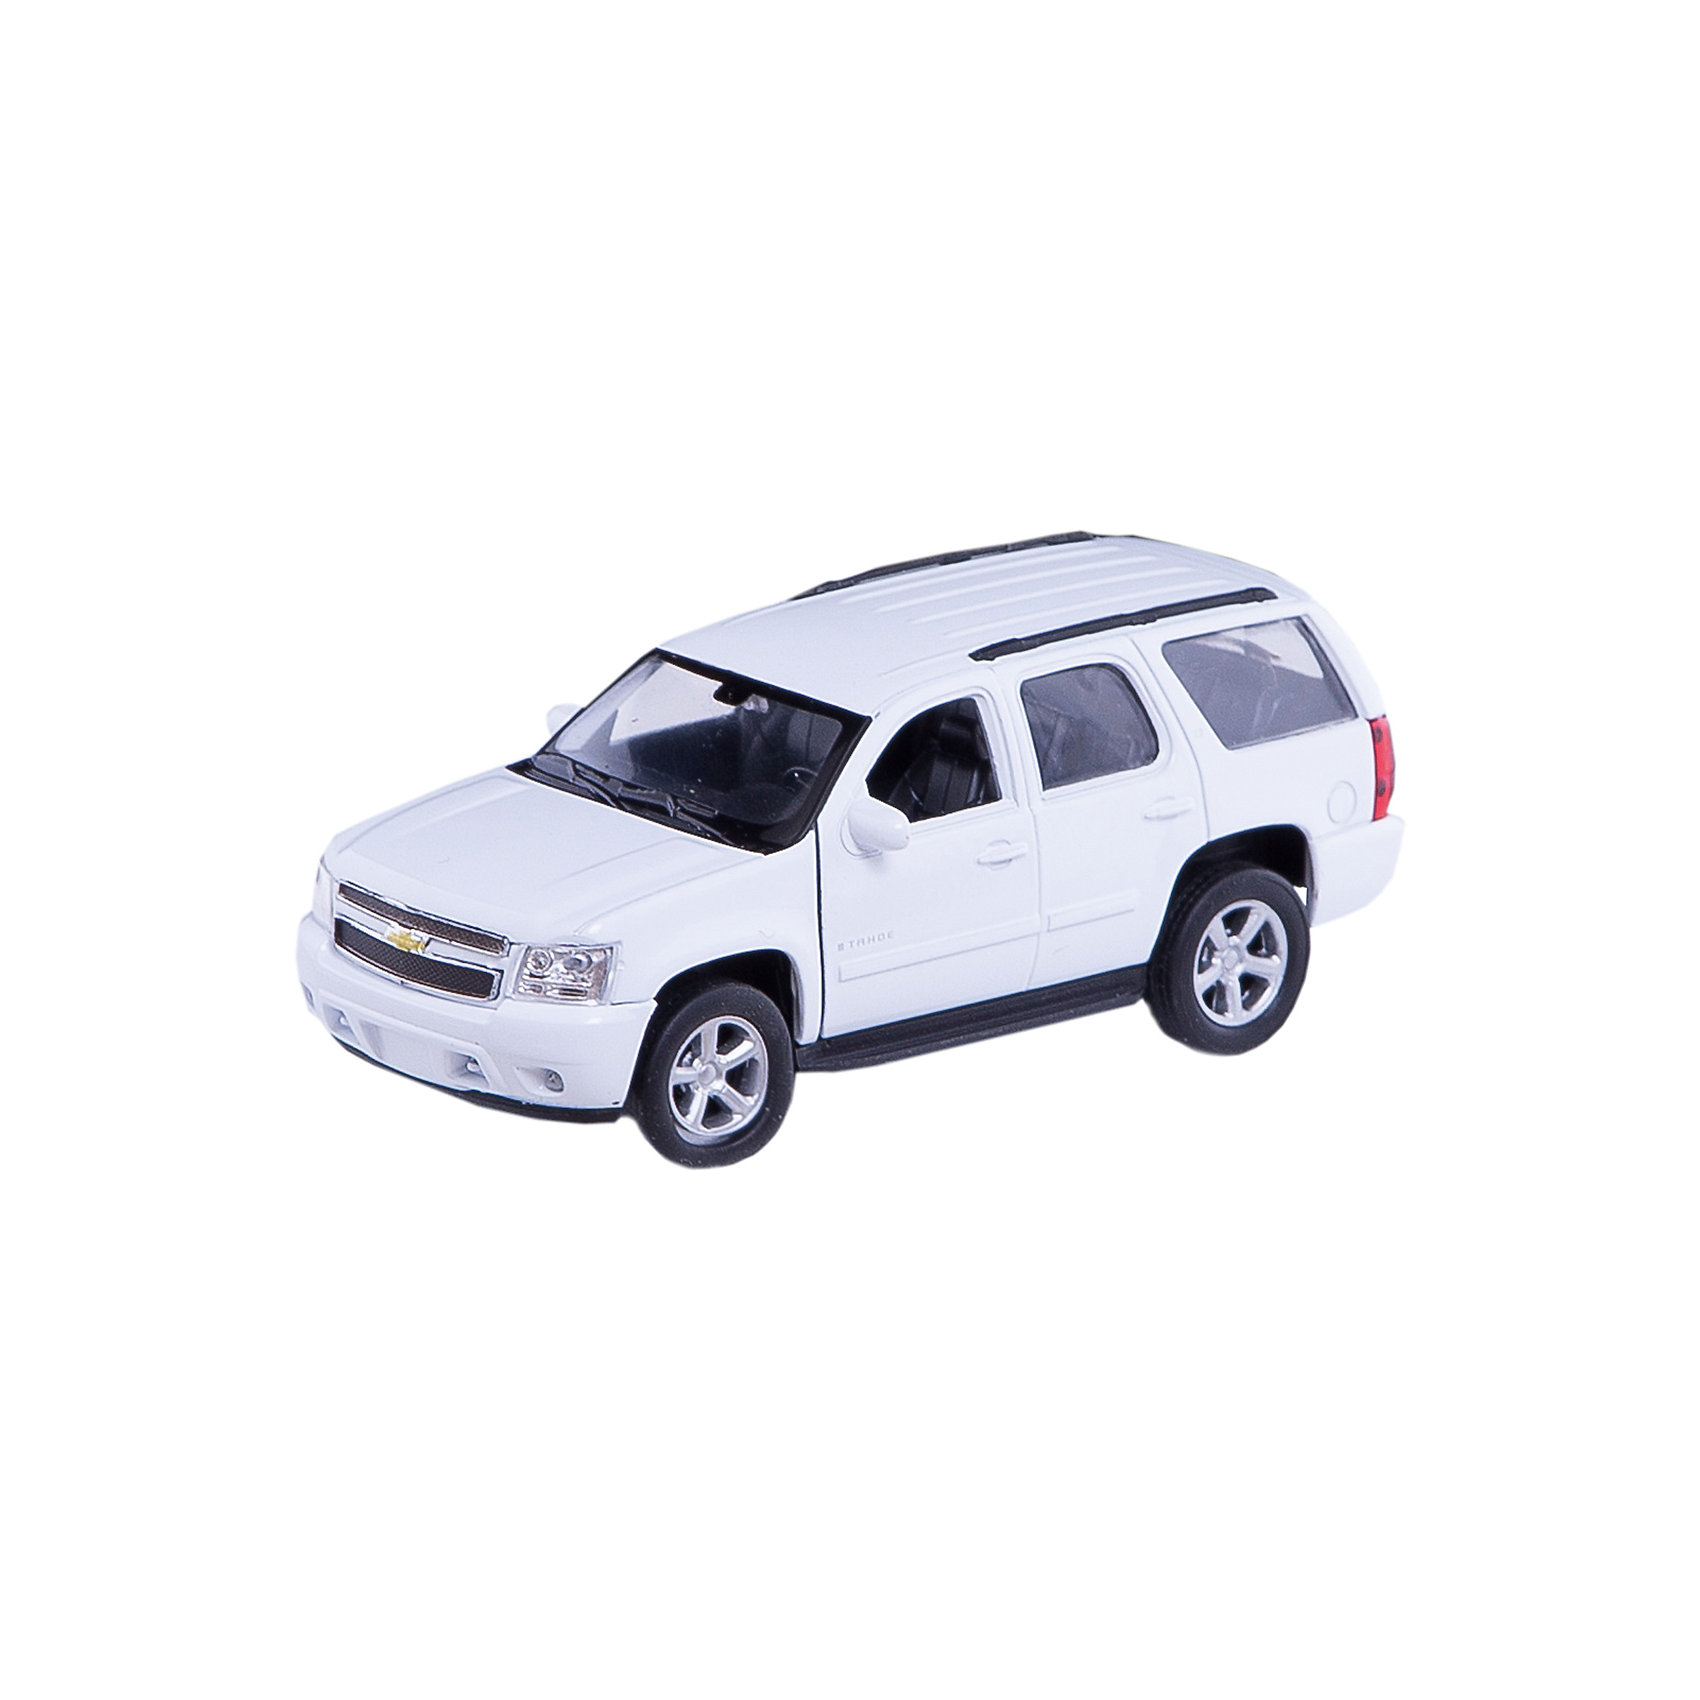 Welly Модель машины 1:34-39 Chevrolet Tahoe, Welly